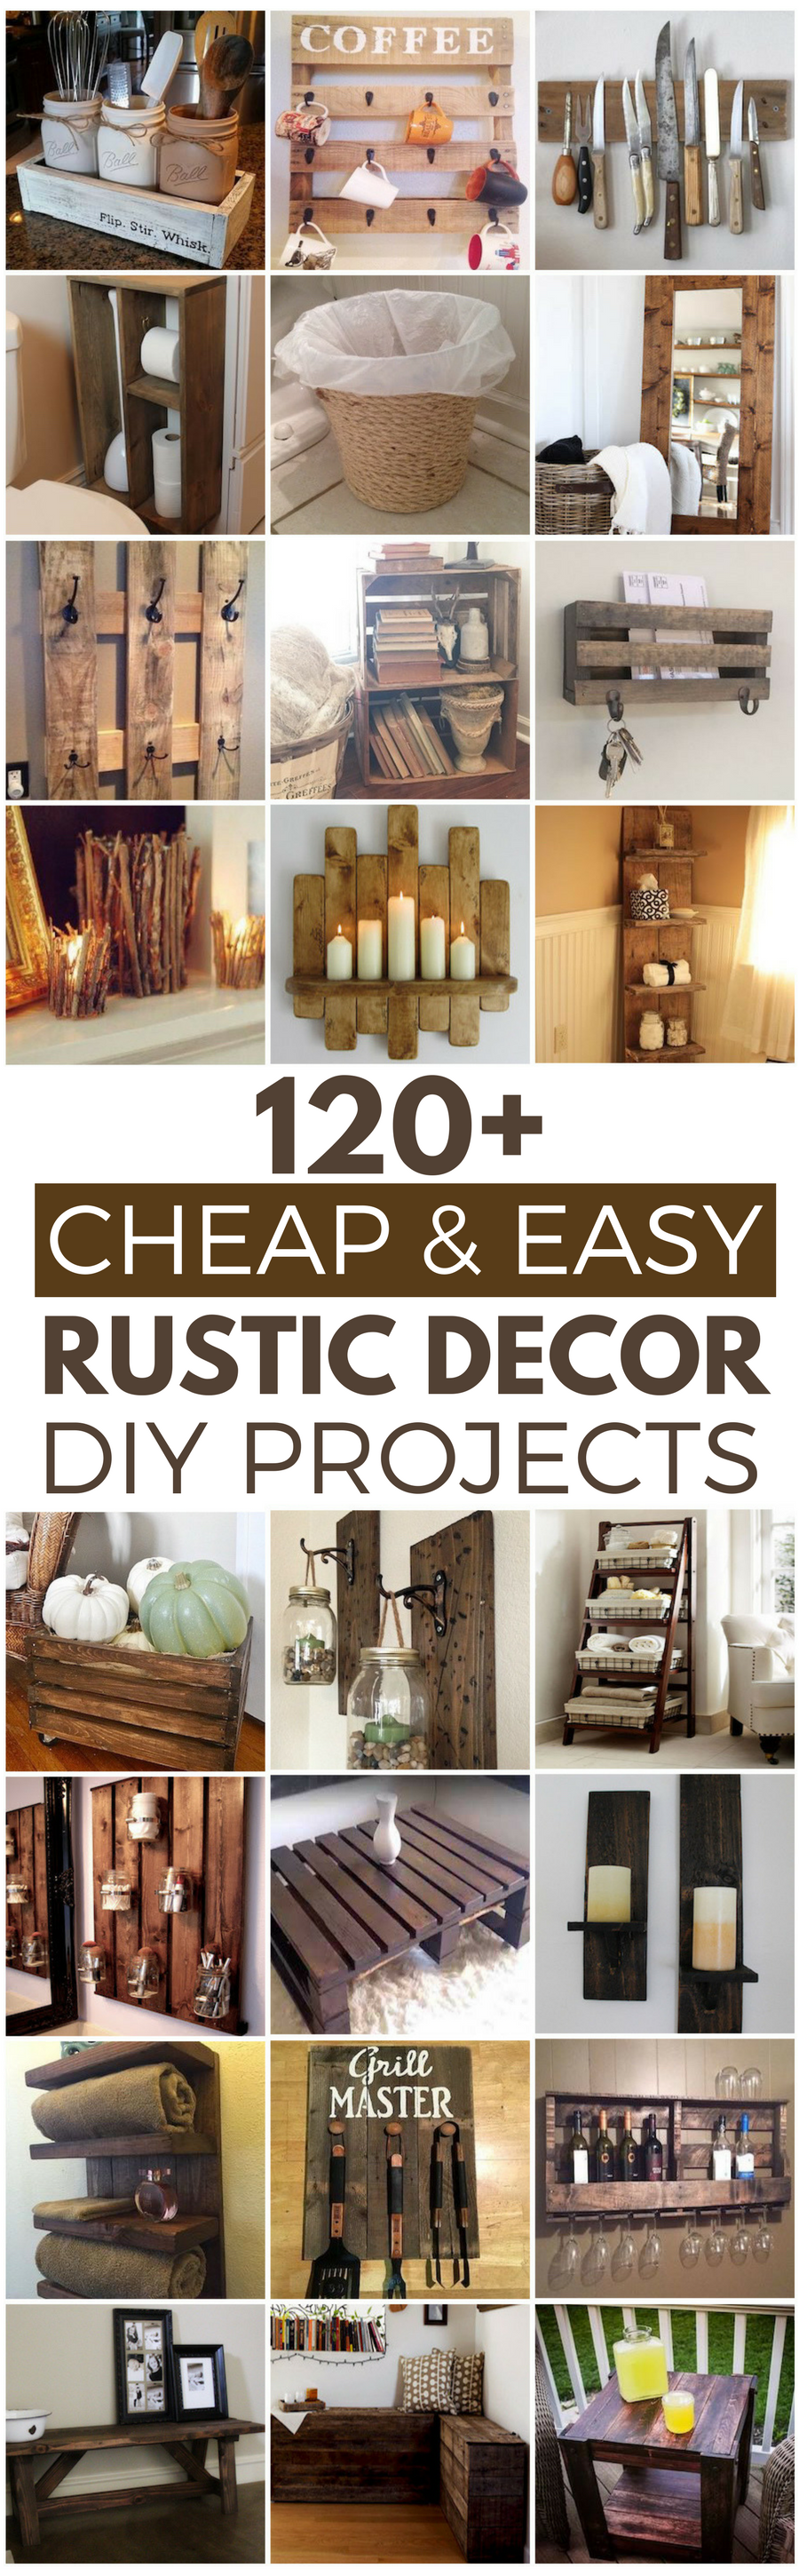 120 Cheap And Easy Rustic Diy Home Decor Ideas Gardendecorideas Diy Rustic Decor Diy Decor Projects Rustic Diy